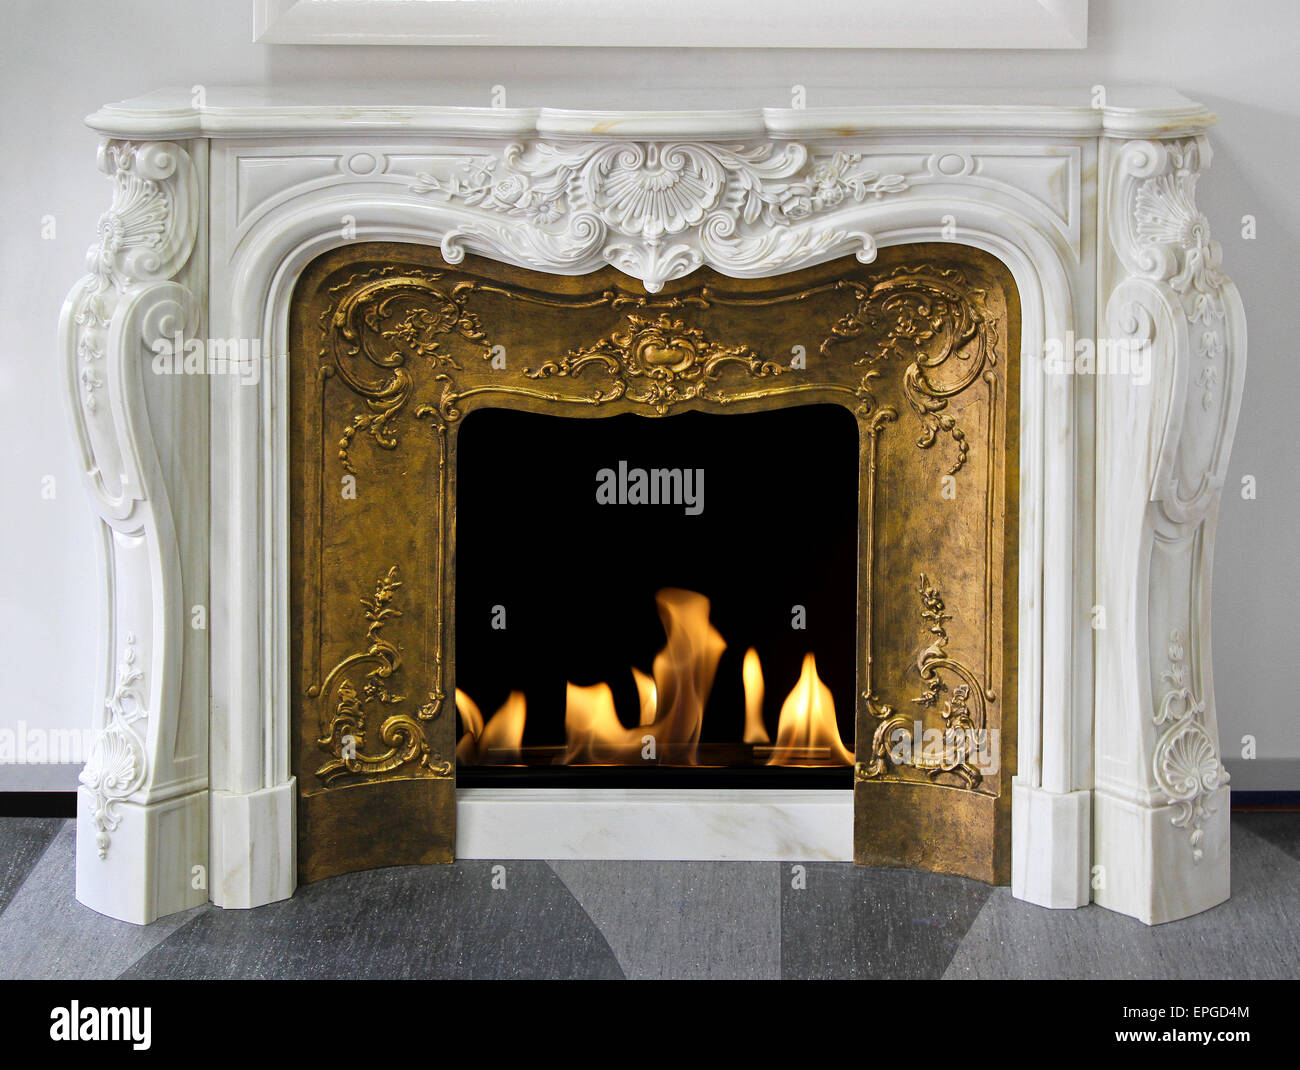 Fireplace - Stock Image